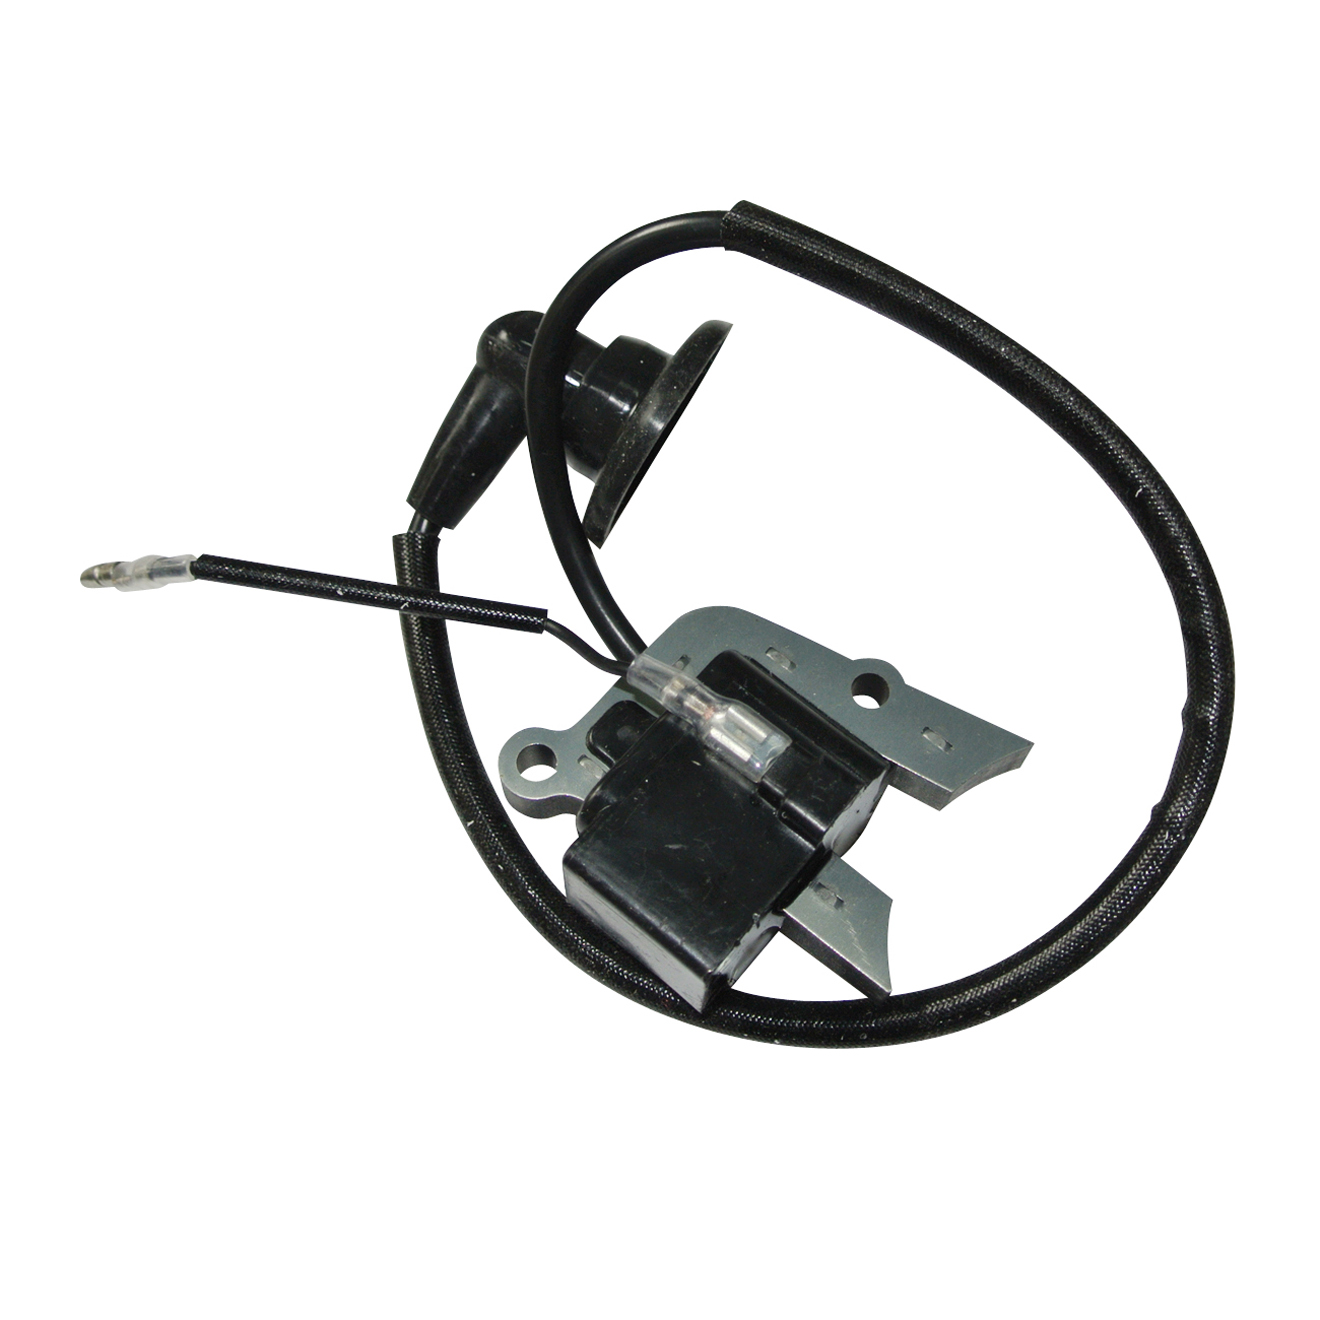 US $11 99 |New 531003384 Ignition Module Coil For Husqvarna 145BT 531 00 33  84 Blower-in Chainsaws from Tools on Aliexpress com | Alibaba Group